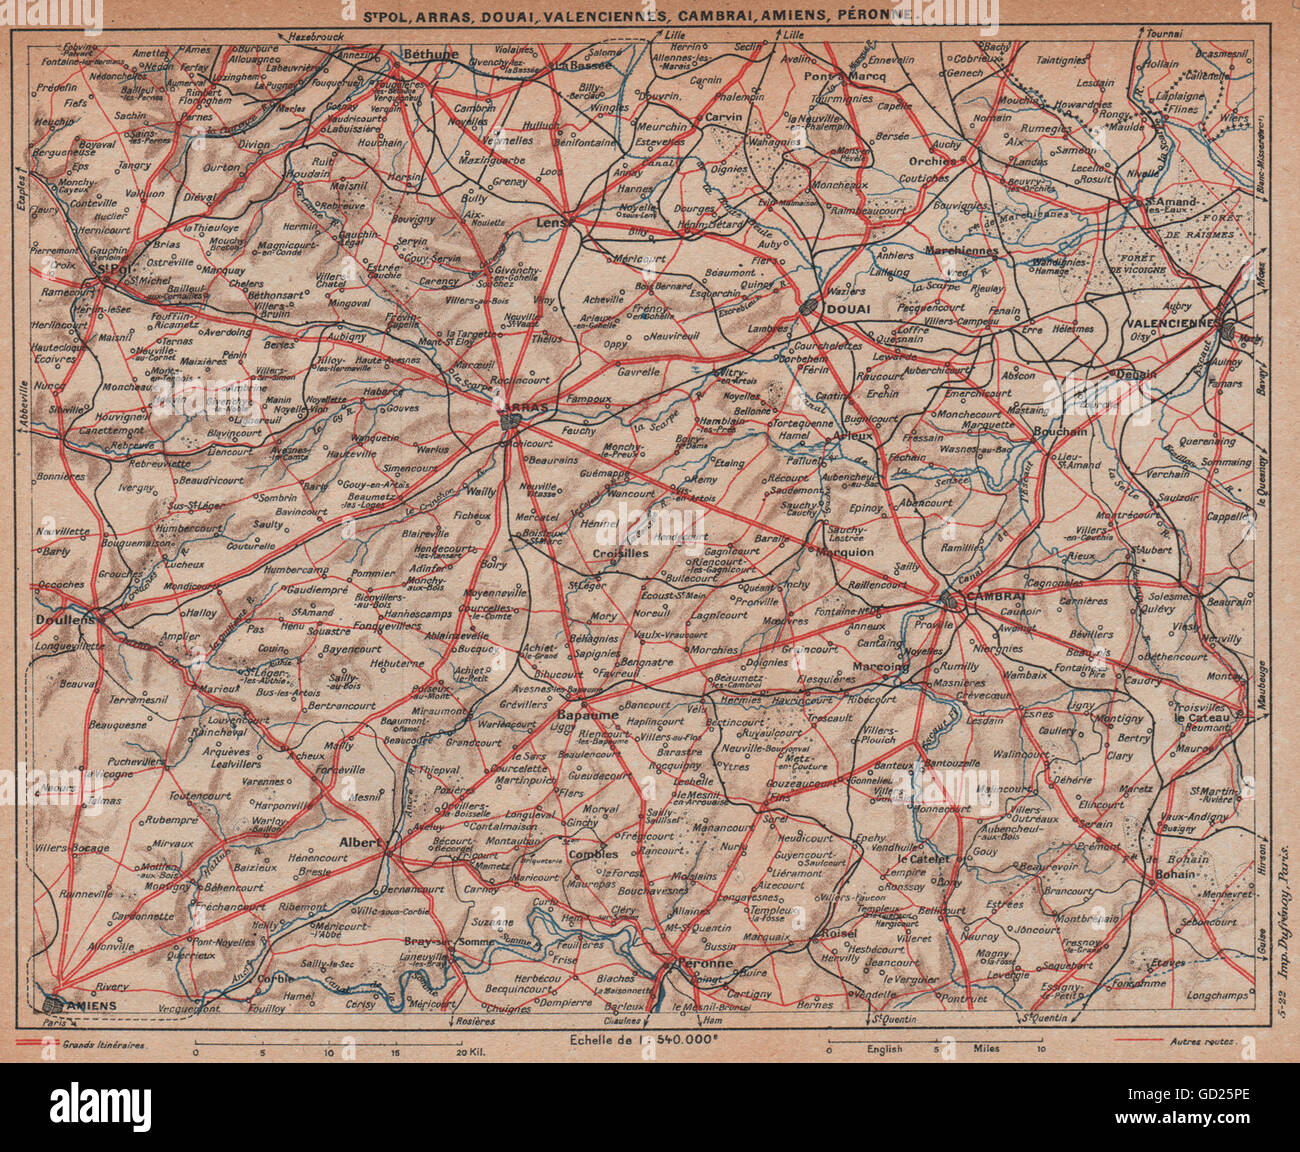 PICARDY NORD-PAS-DE-CALAIS. Arras Cambrai Douai Amiens Valenciennes, 1922 map Stock Photo